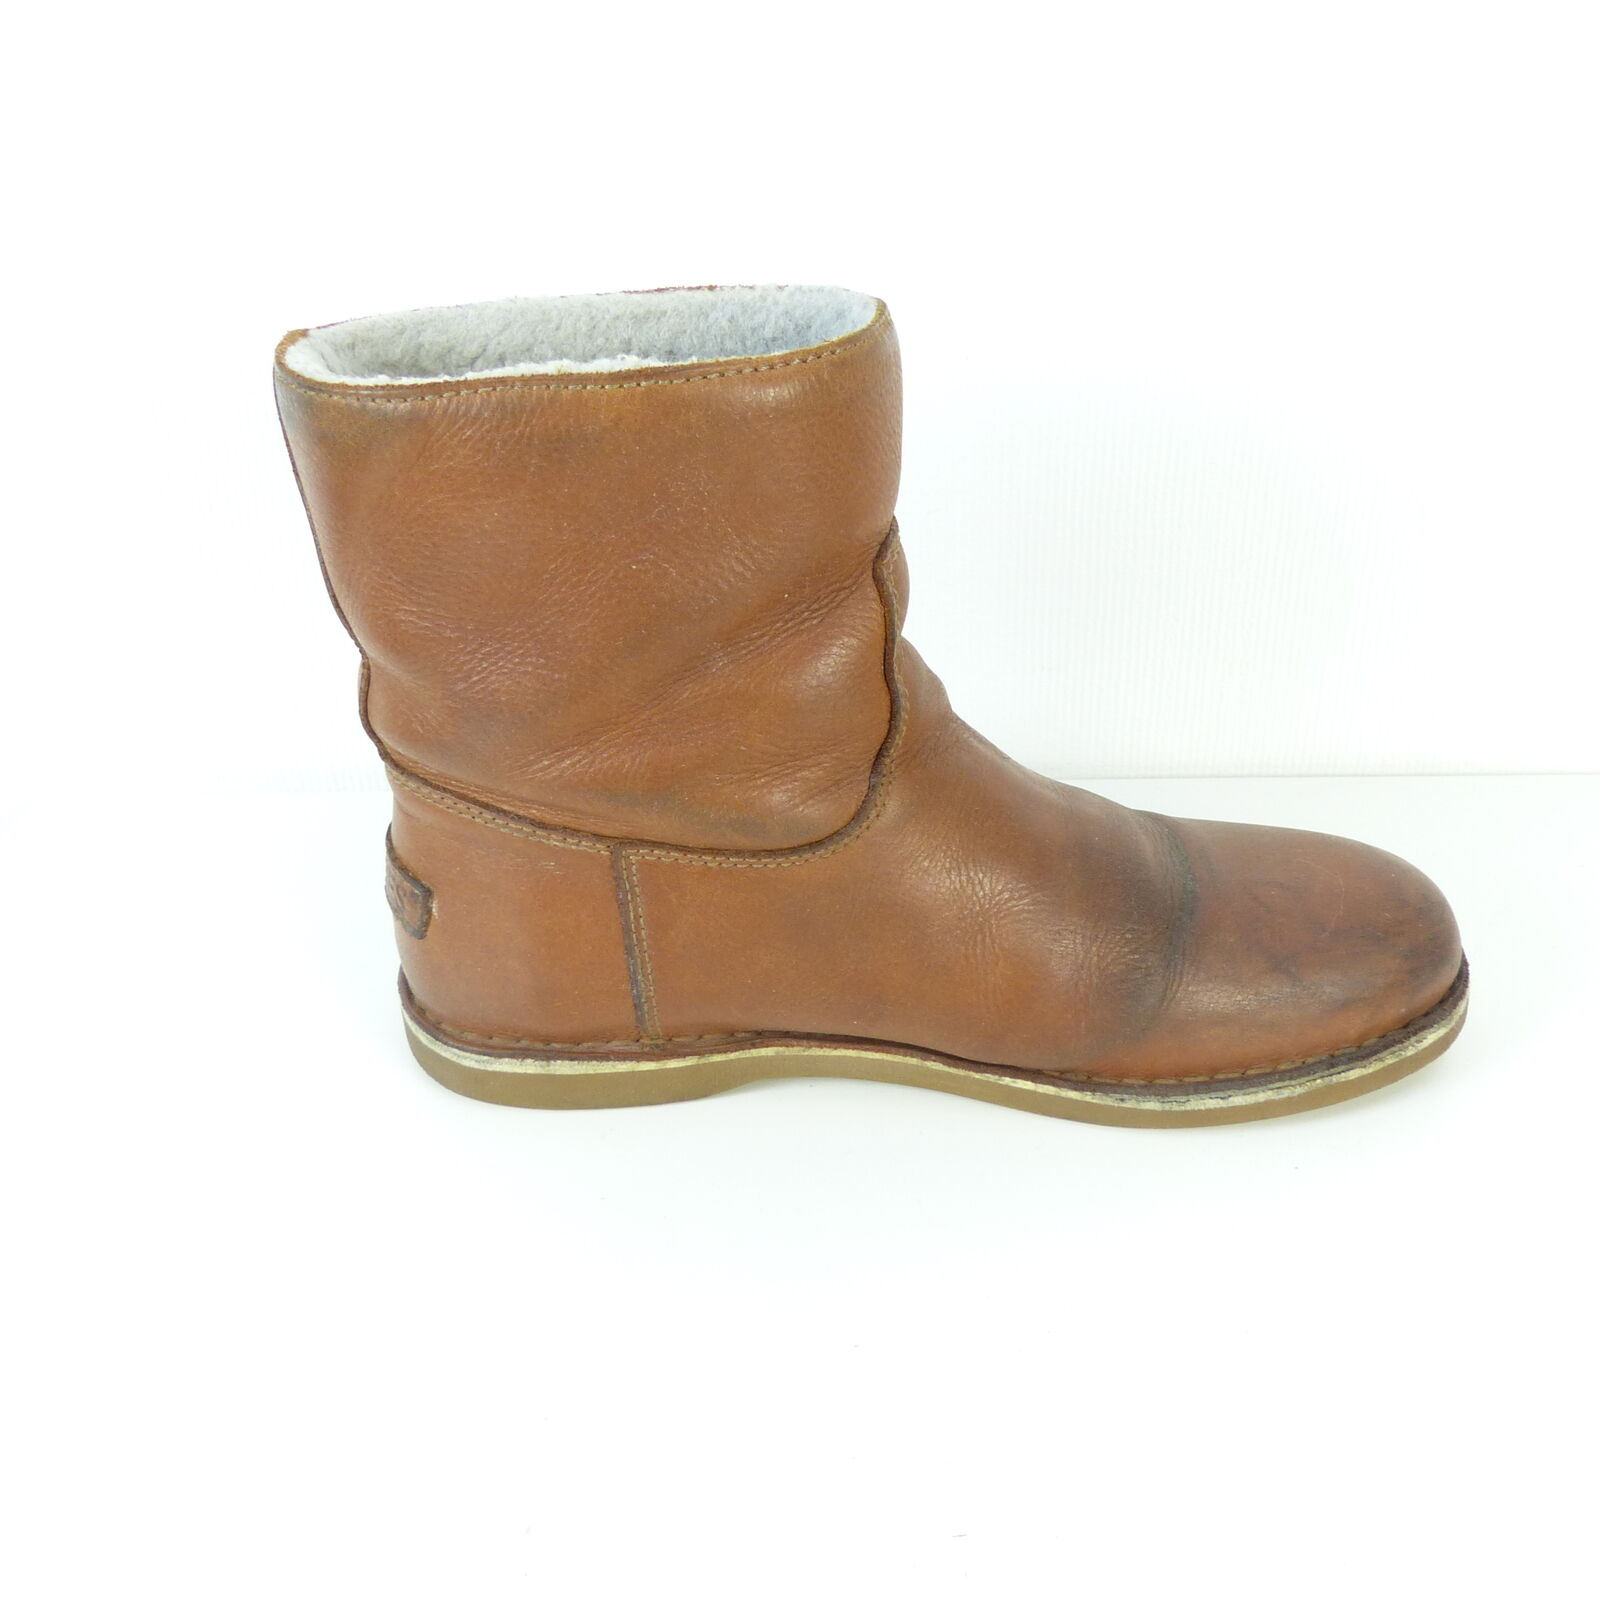 Shabbies Shabbies Shabbies Amsterdam cuir bottes 32219 Marron Taille EUR 39 140a5a